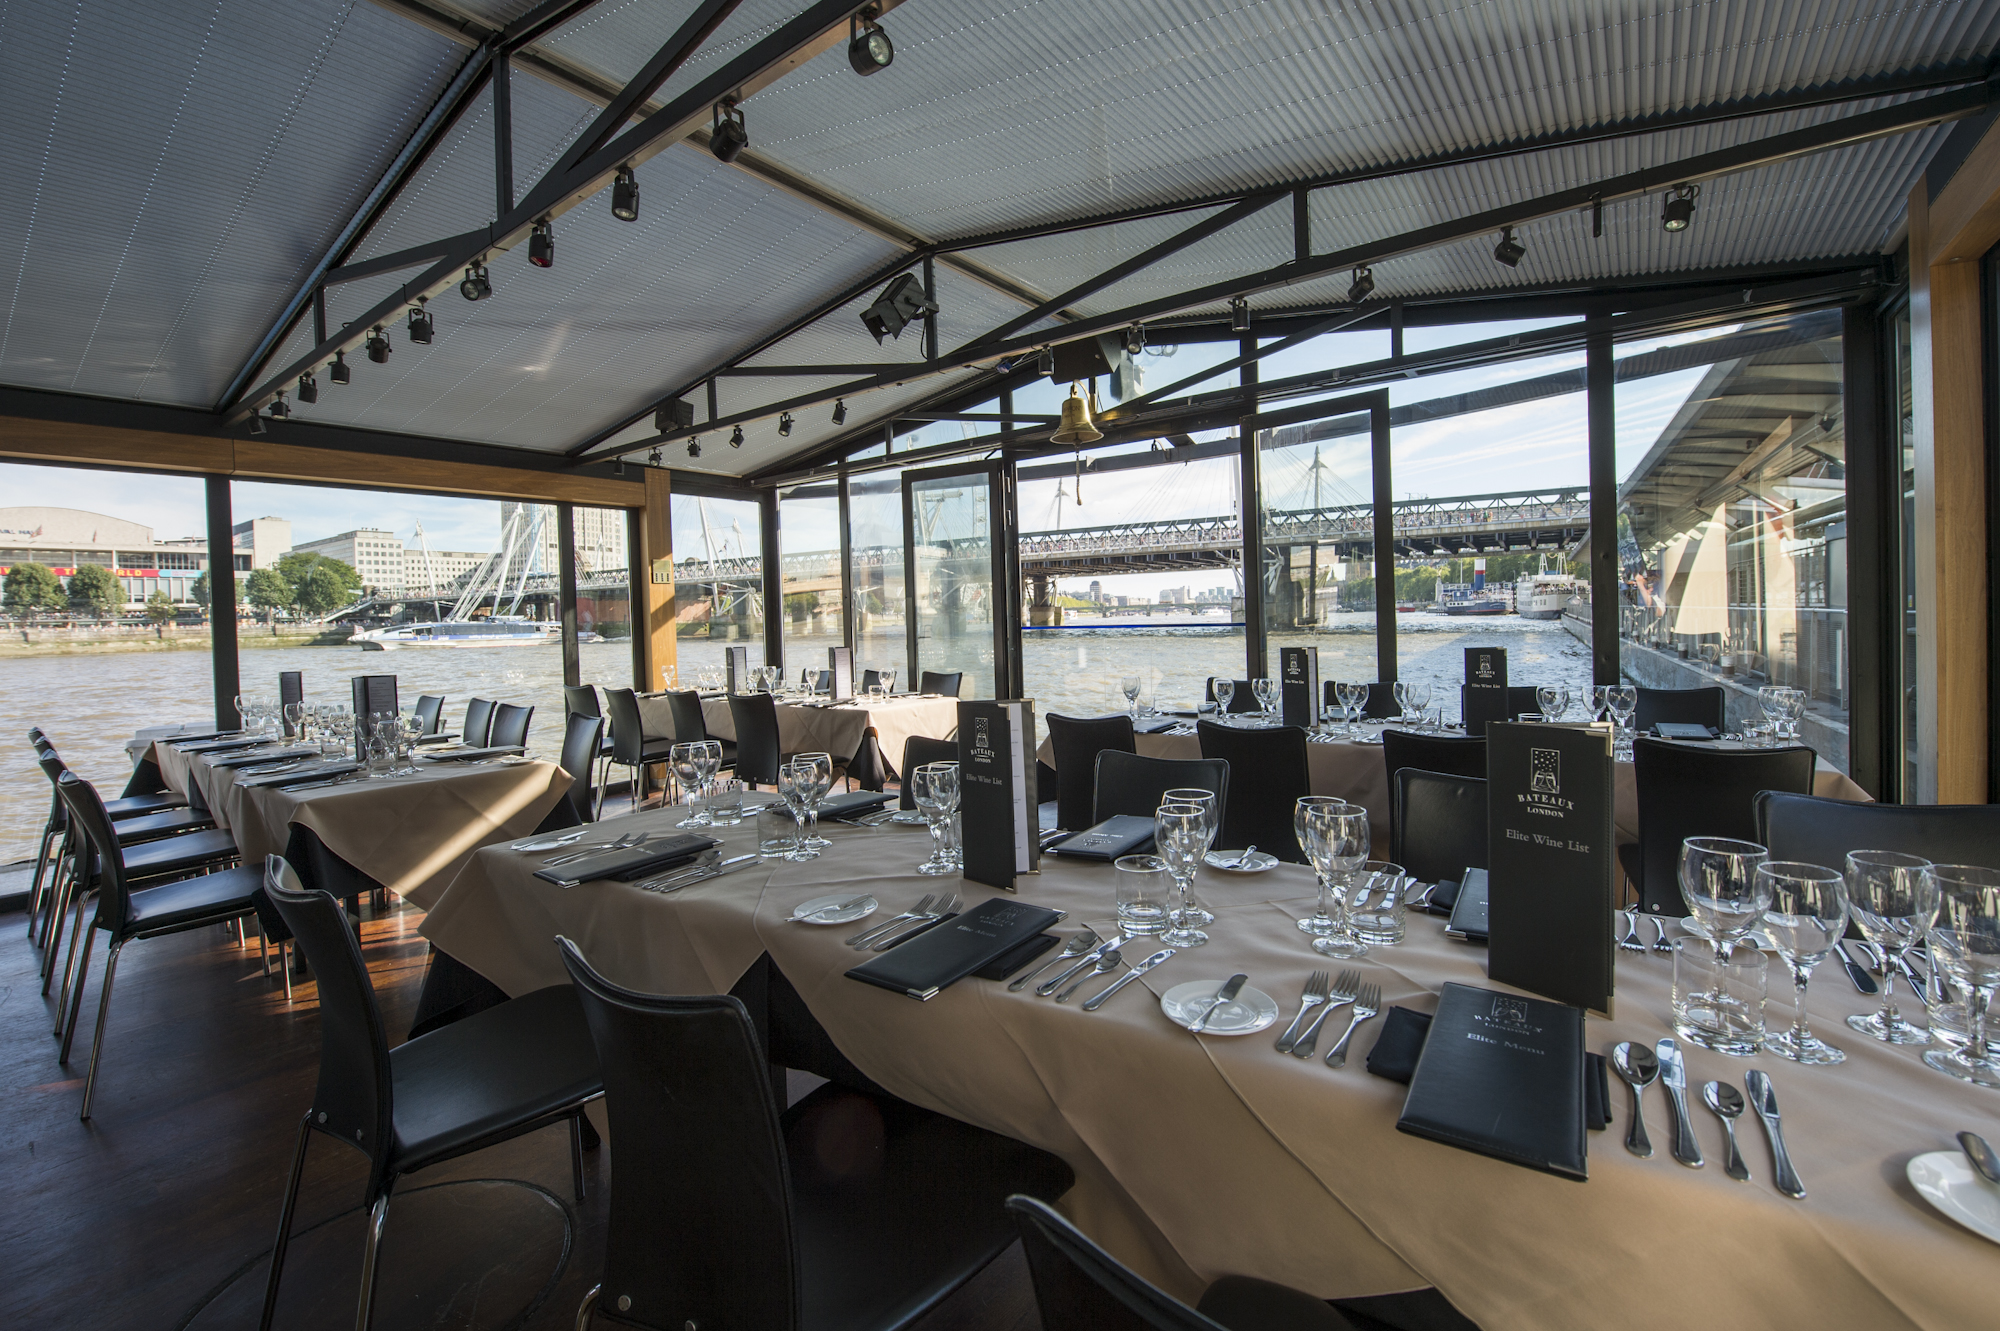 Bateaux Summer Party River Cruises WC2 inside of boat with tables and chairs